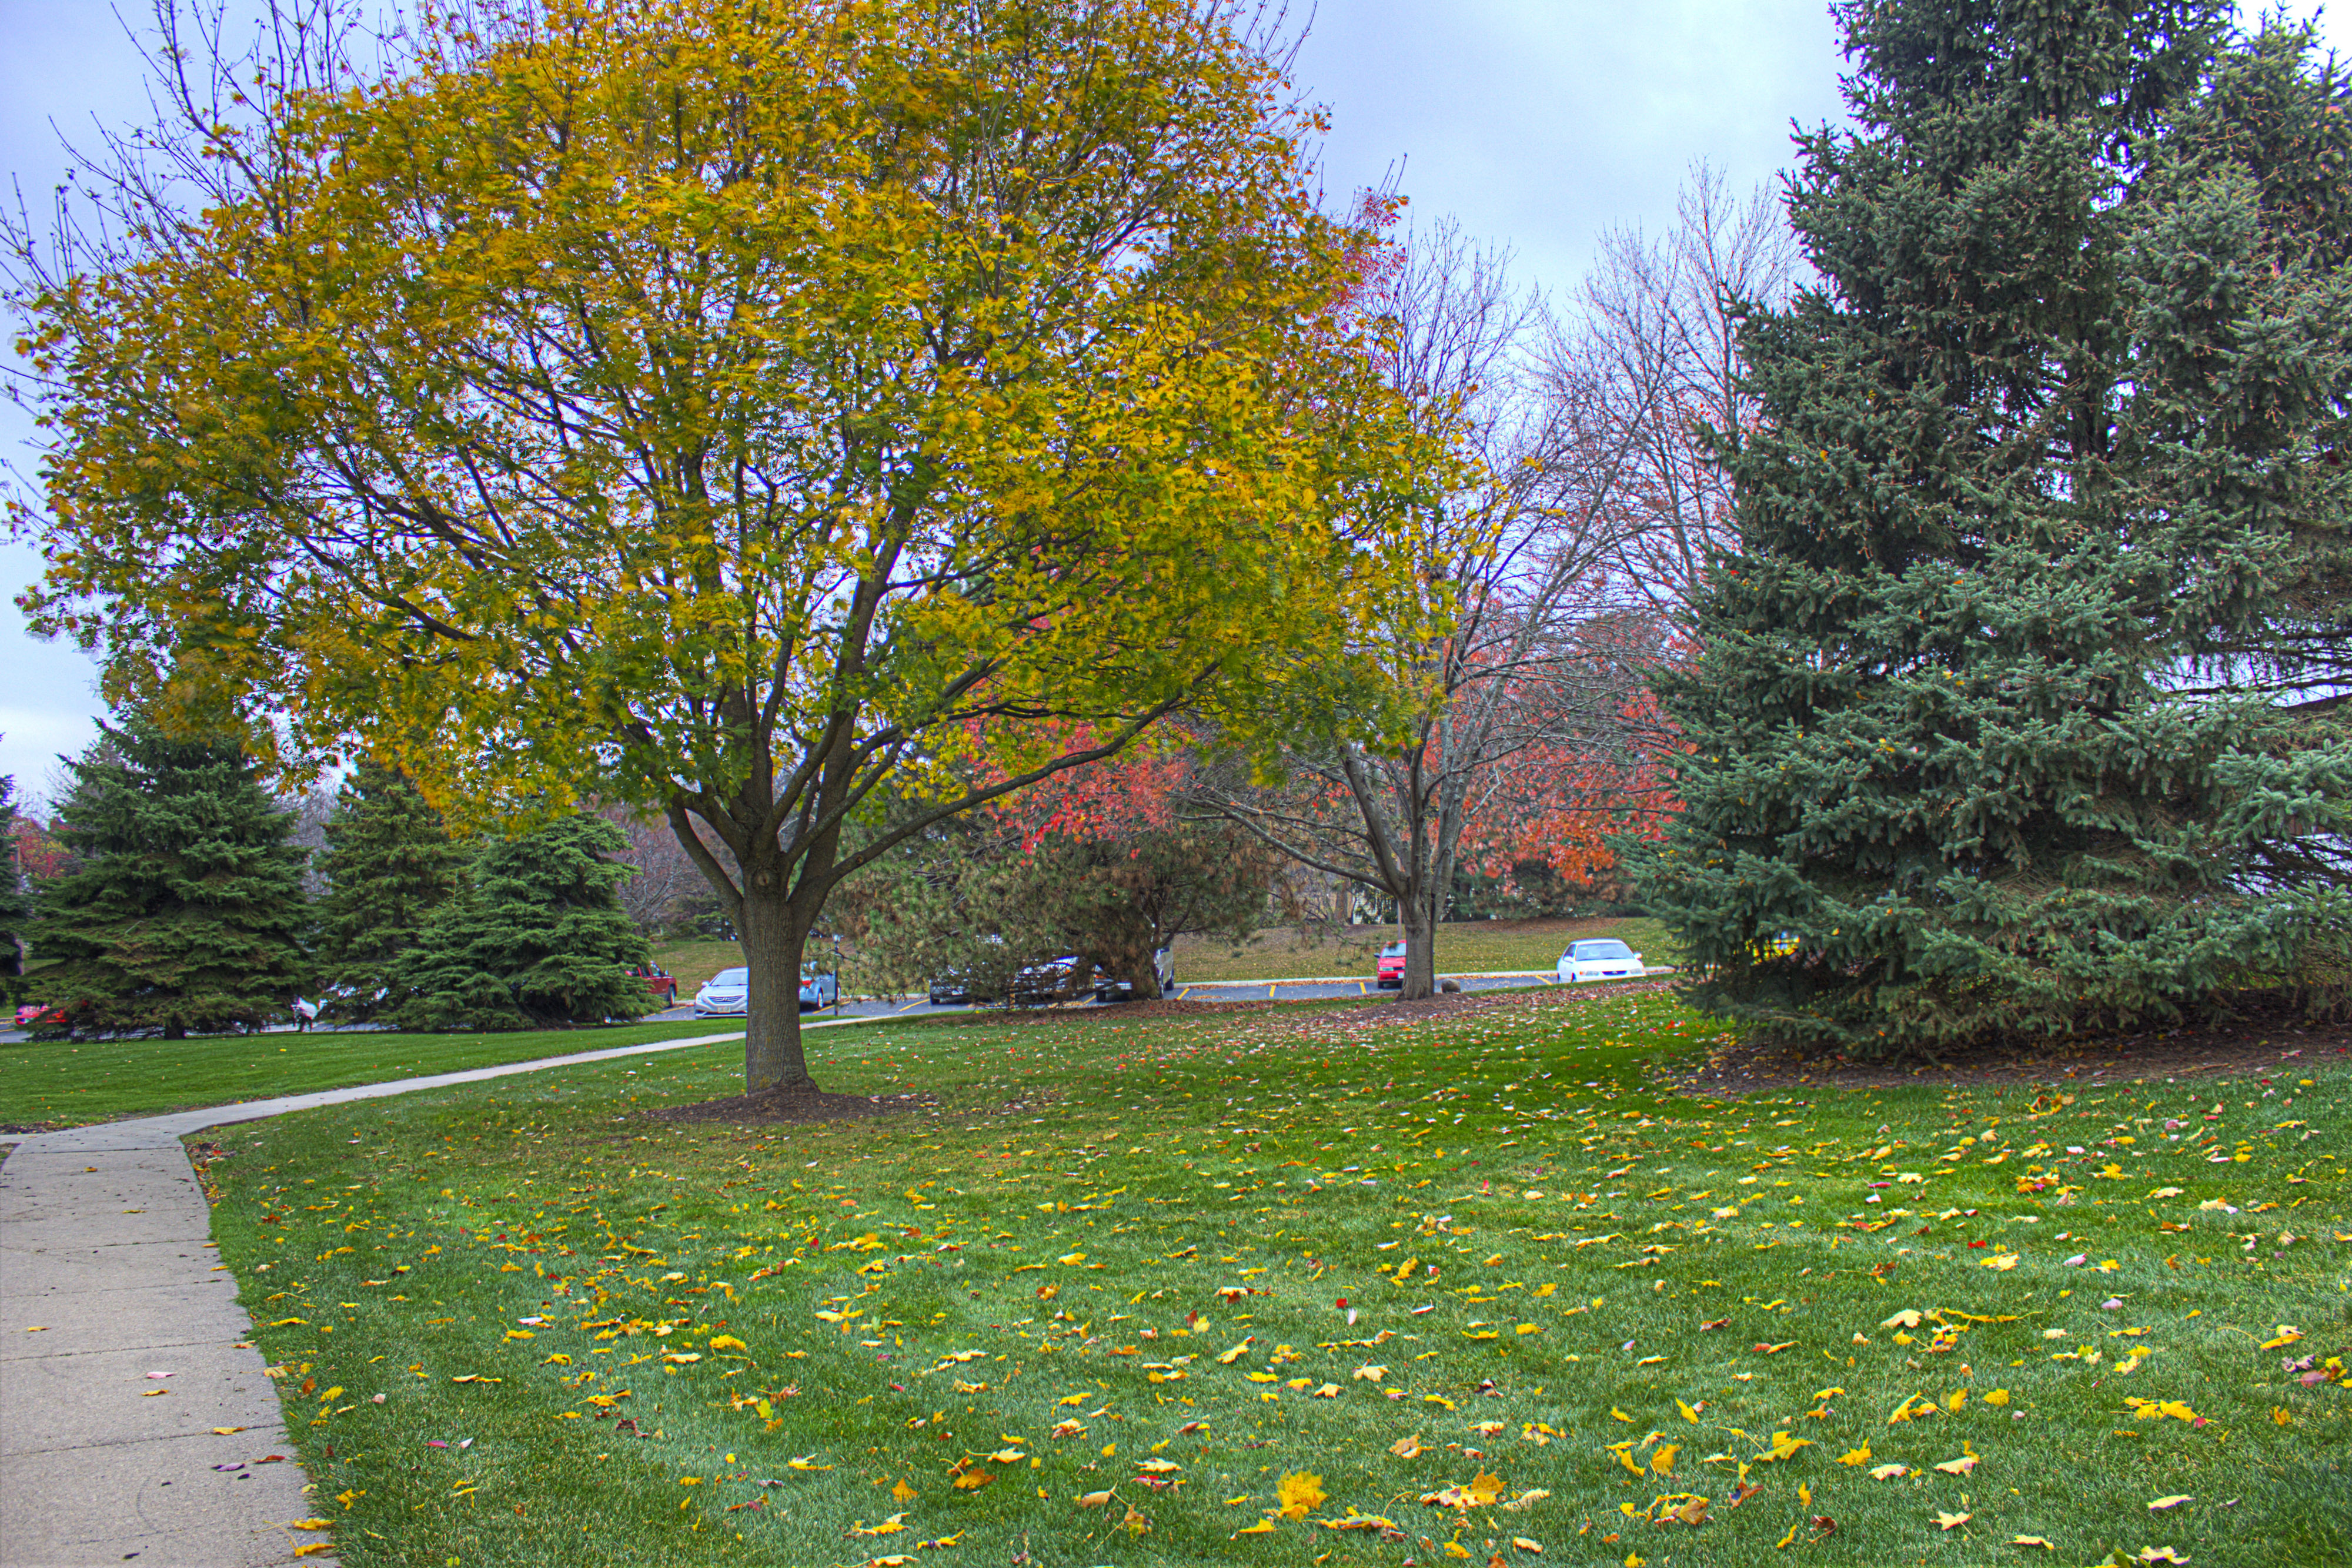 Autumn Trees in Madison, Wisconsin image - Free stock photo - Public ...